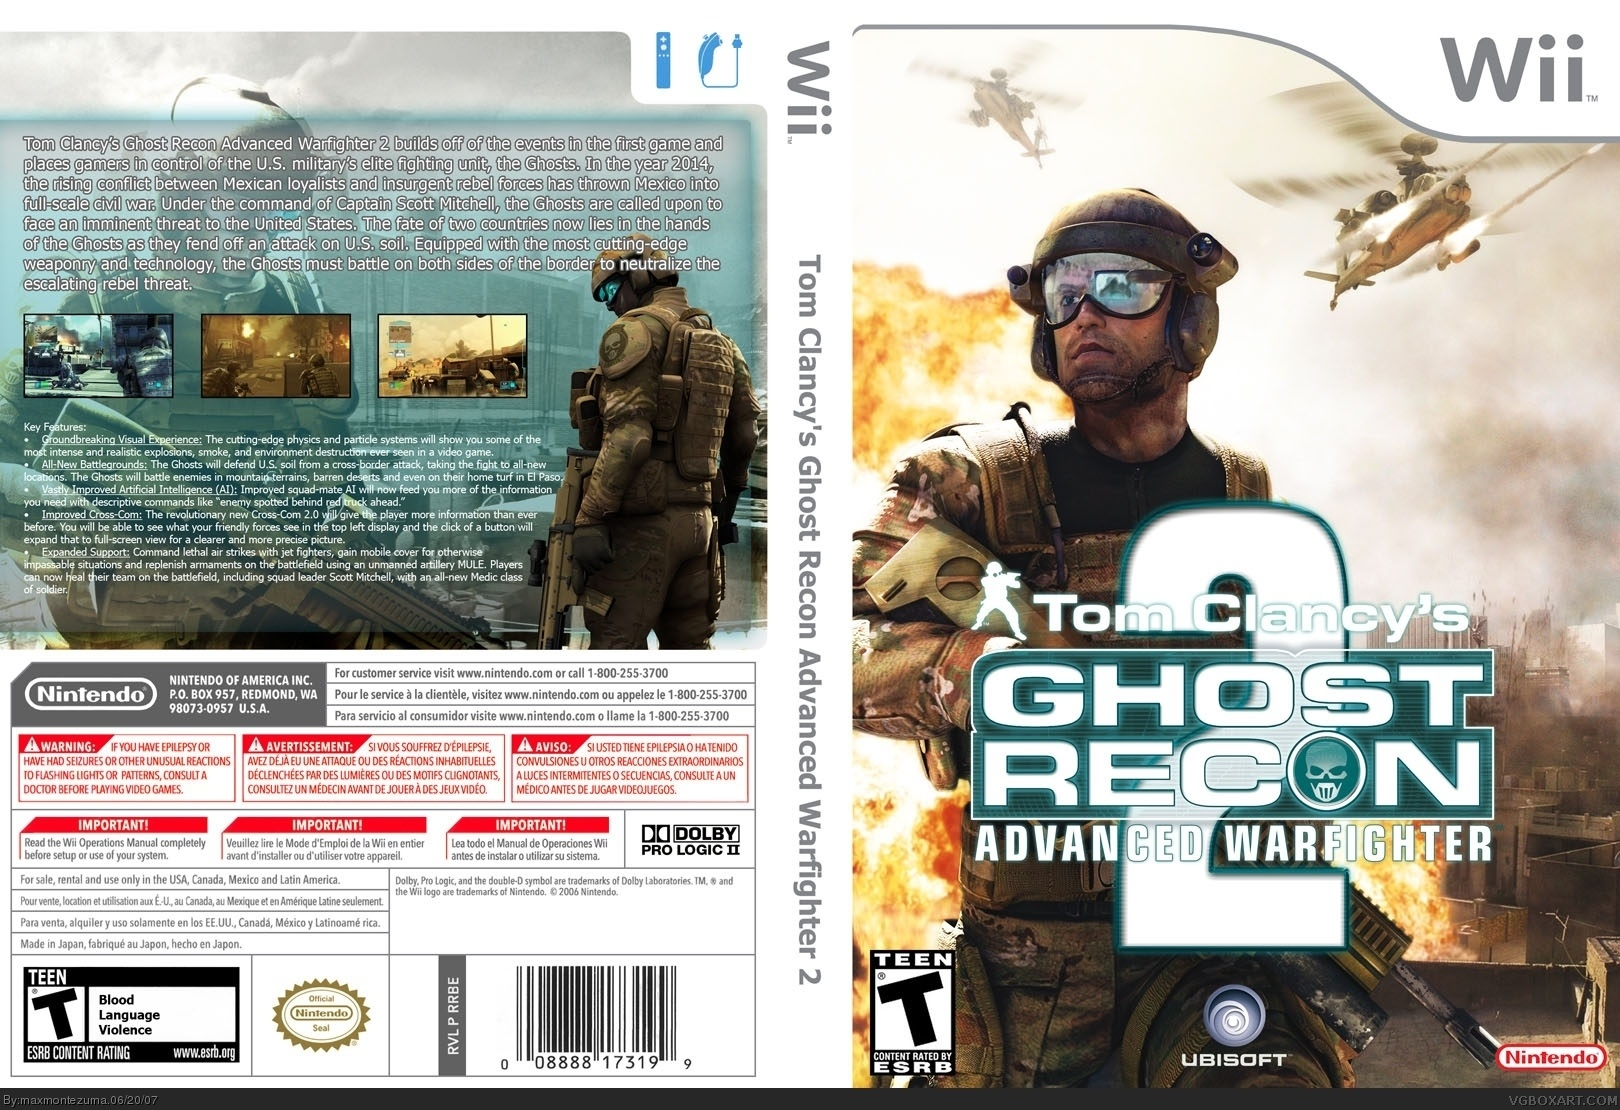 tom clancy's ghost recon advanced warfighter 2 wii box art cover